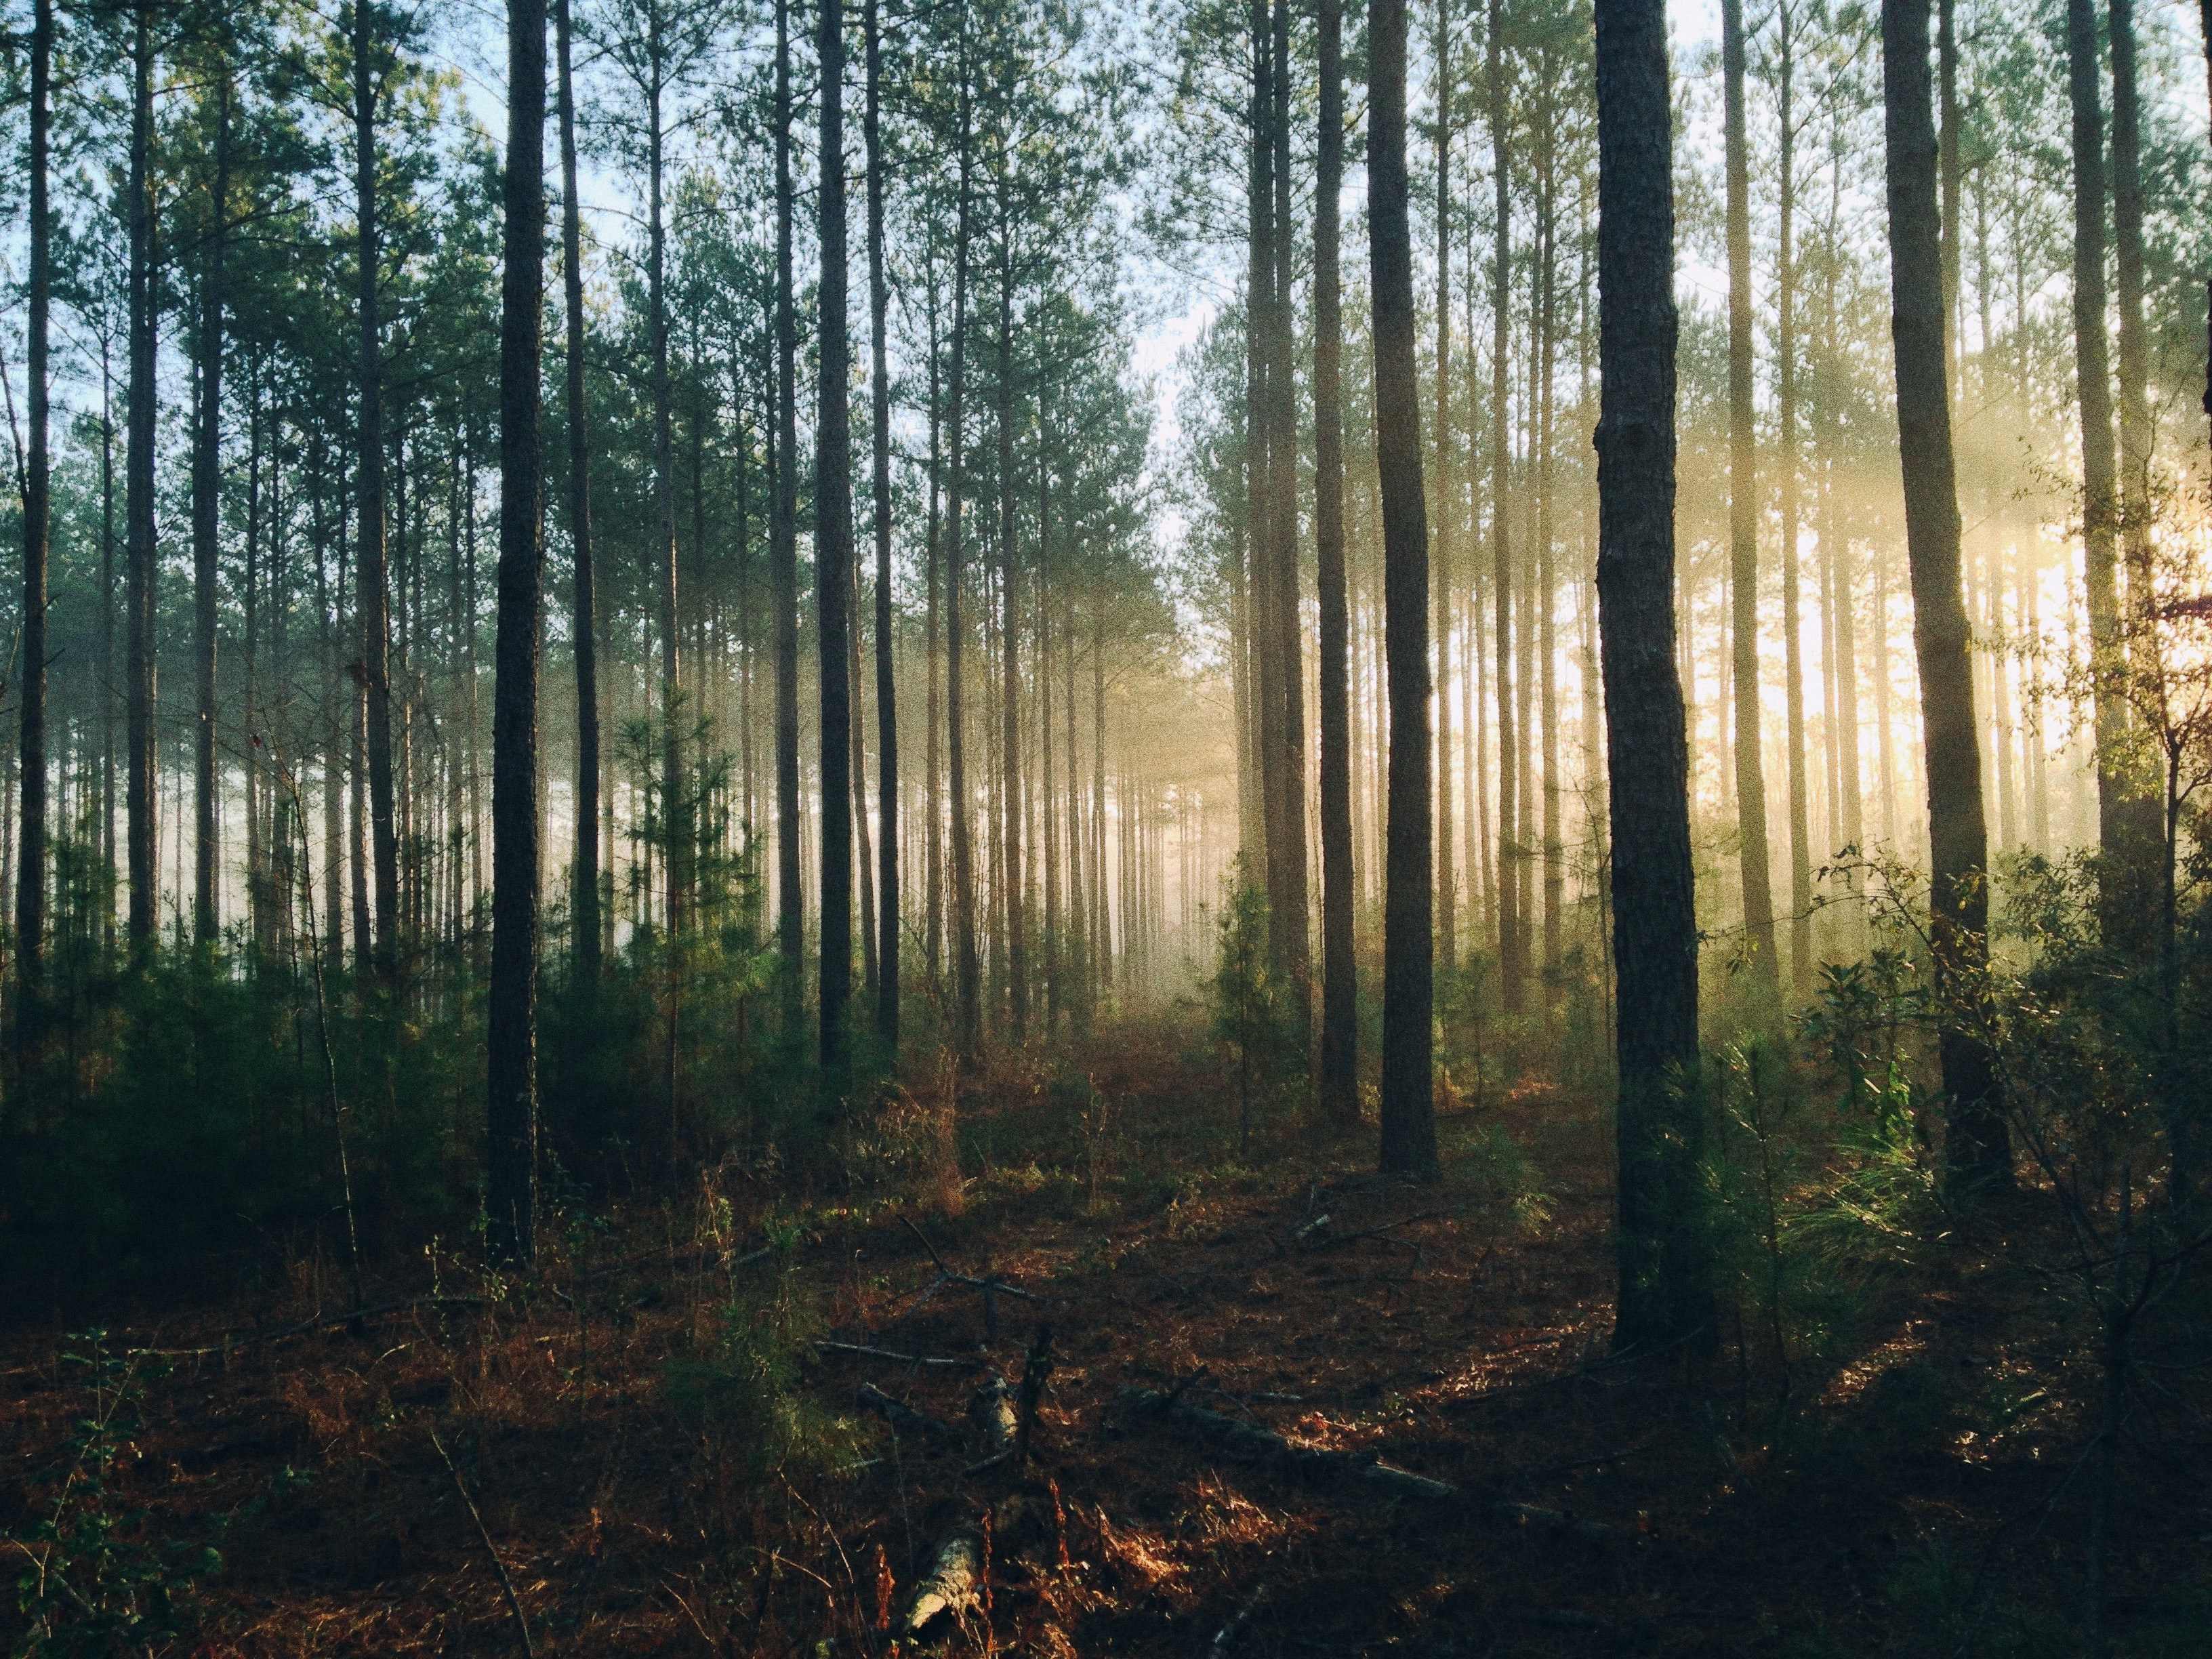 Global sovereign debt market not seeing the trees for the forest